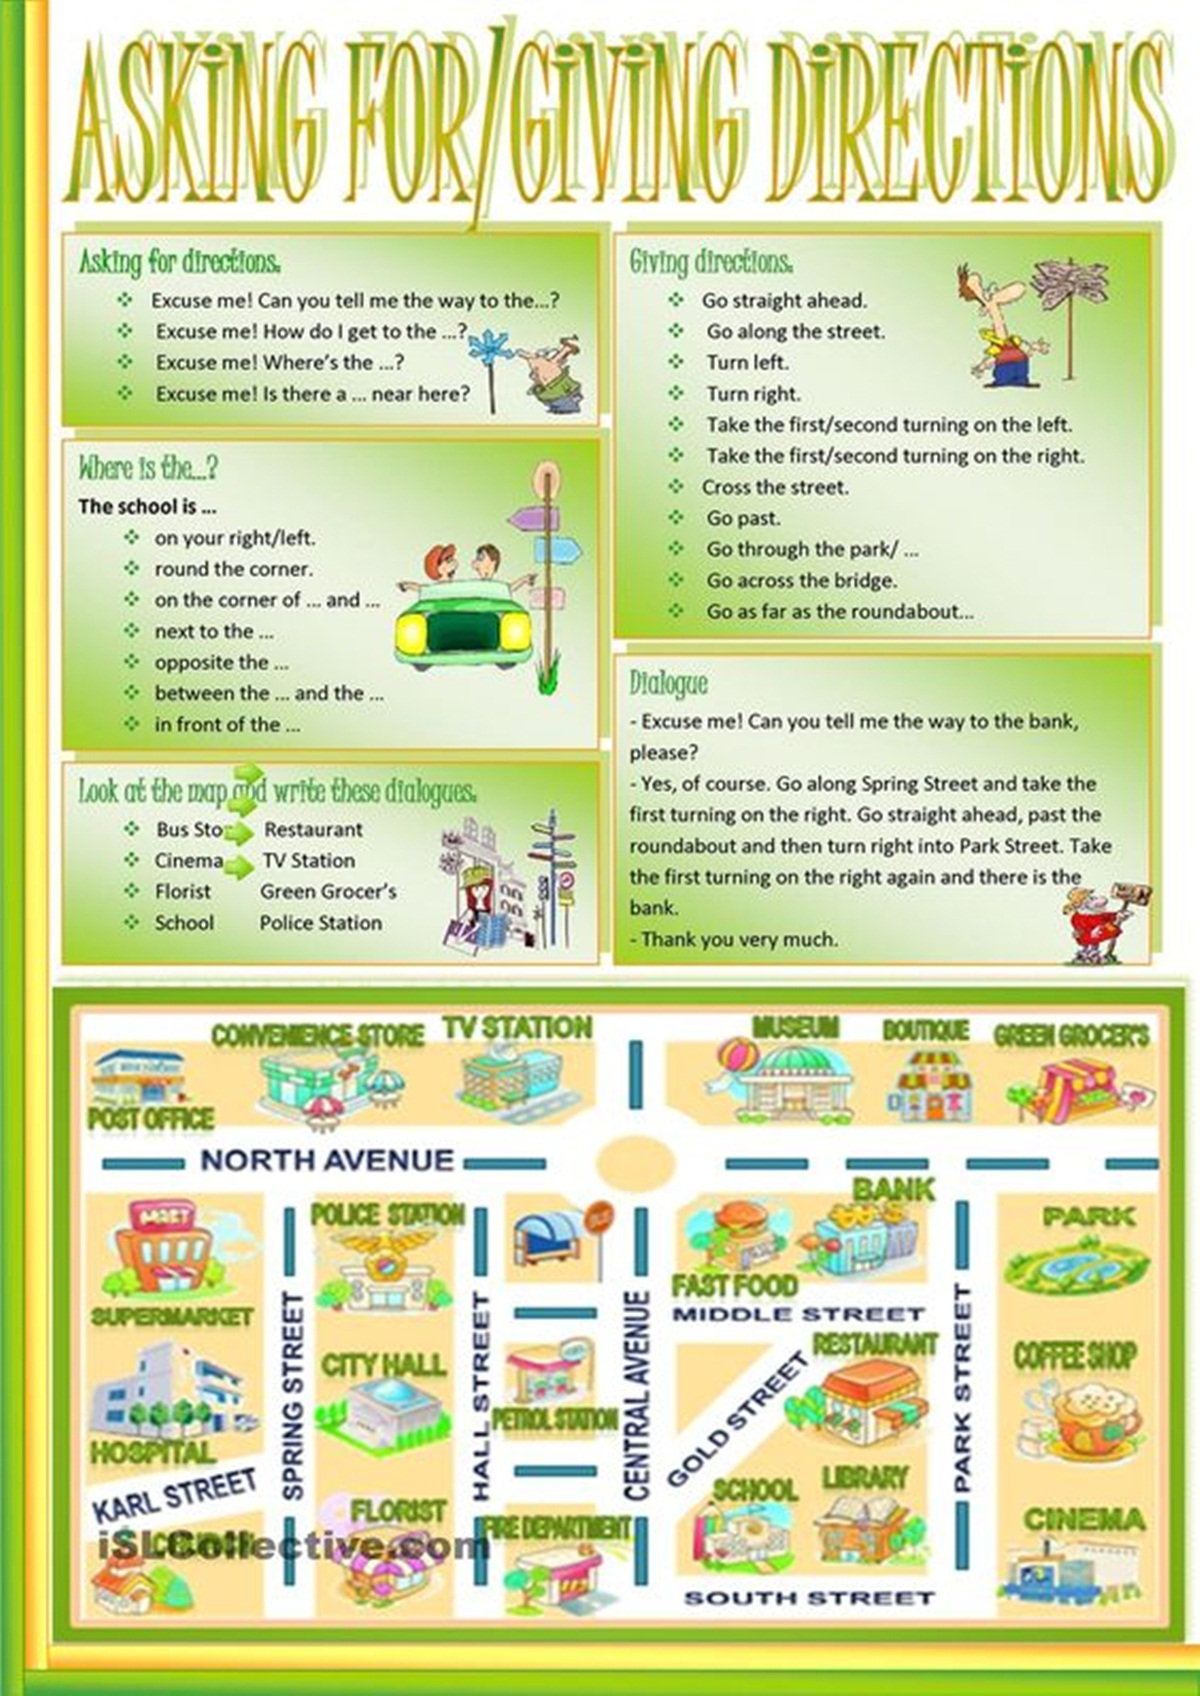 Useful English Phrases for Asking for & Giving Directions 3